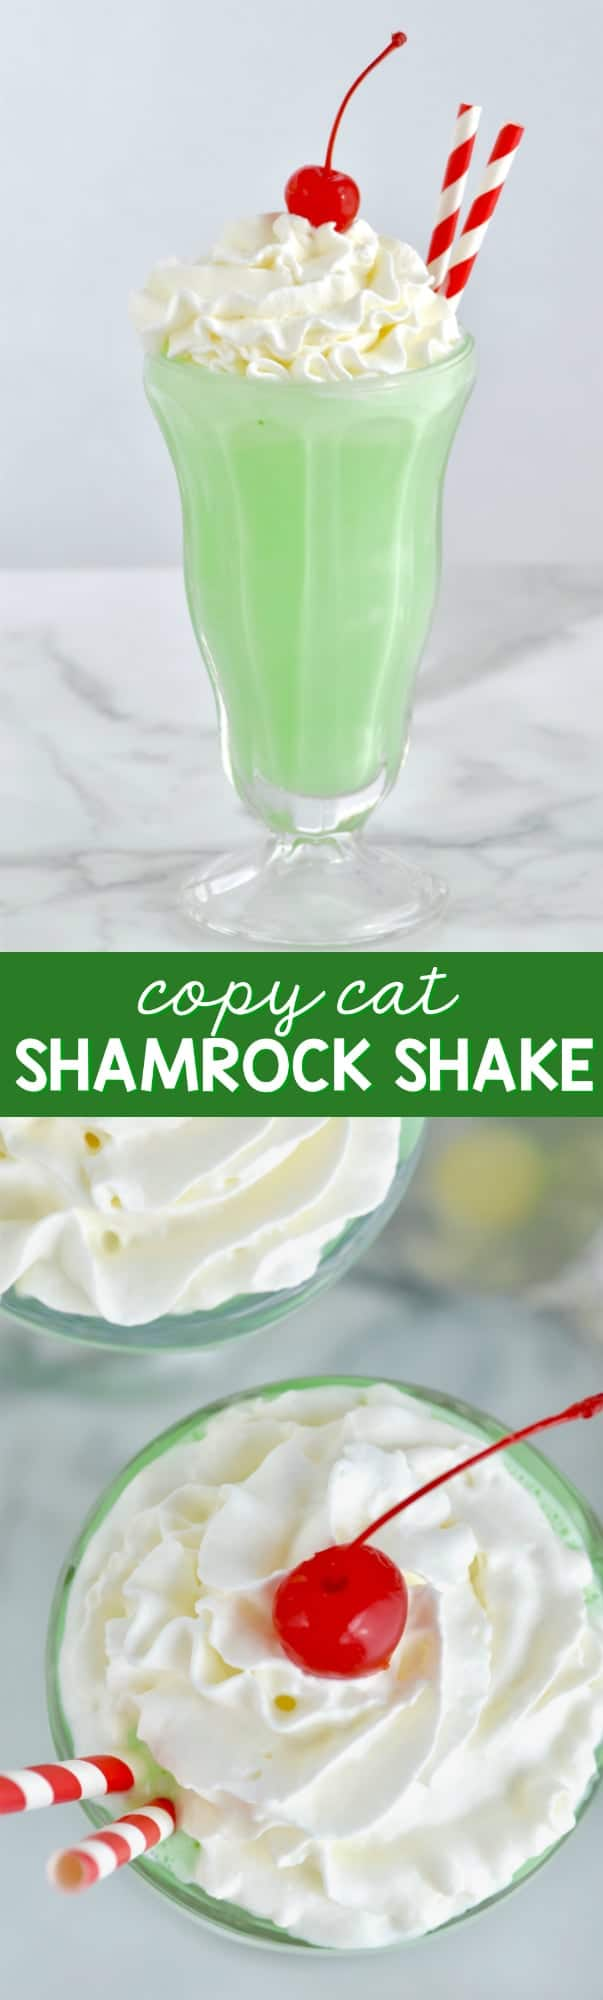 This Shamrock Shake Recipe is so easy and perfect for a treat at home!